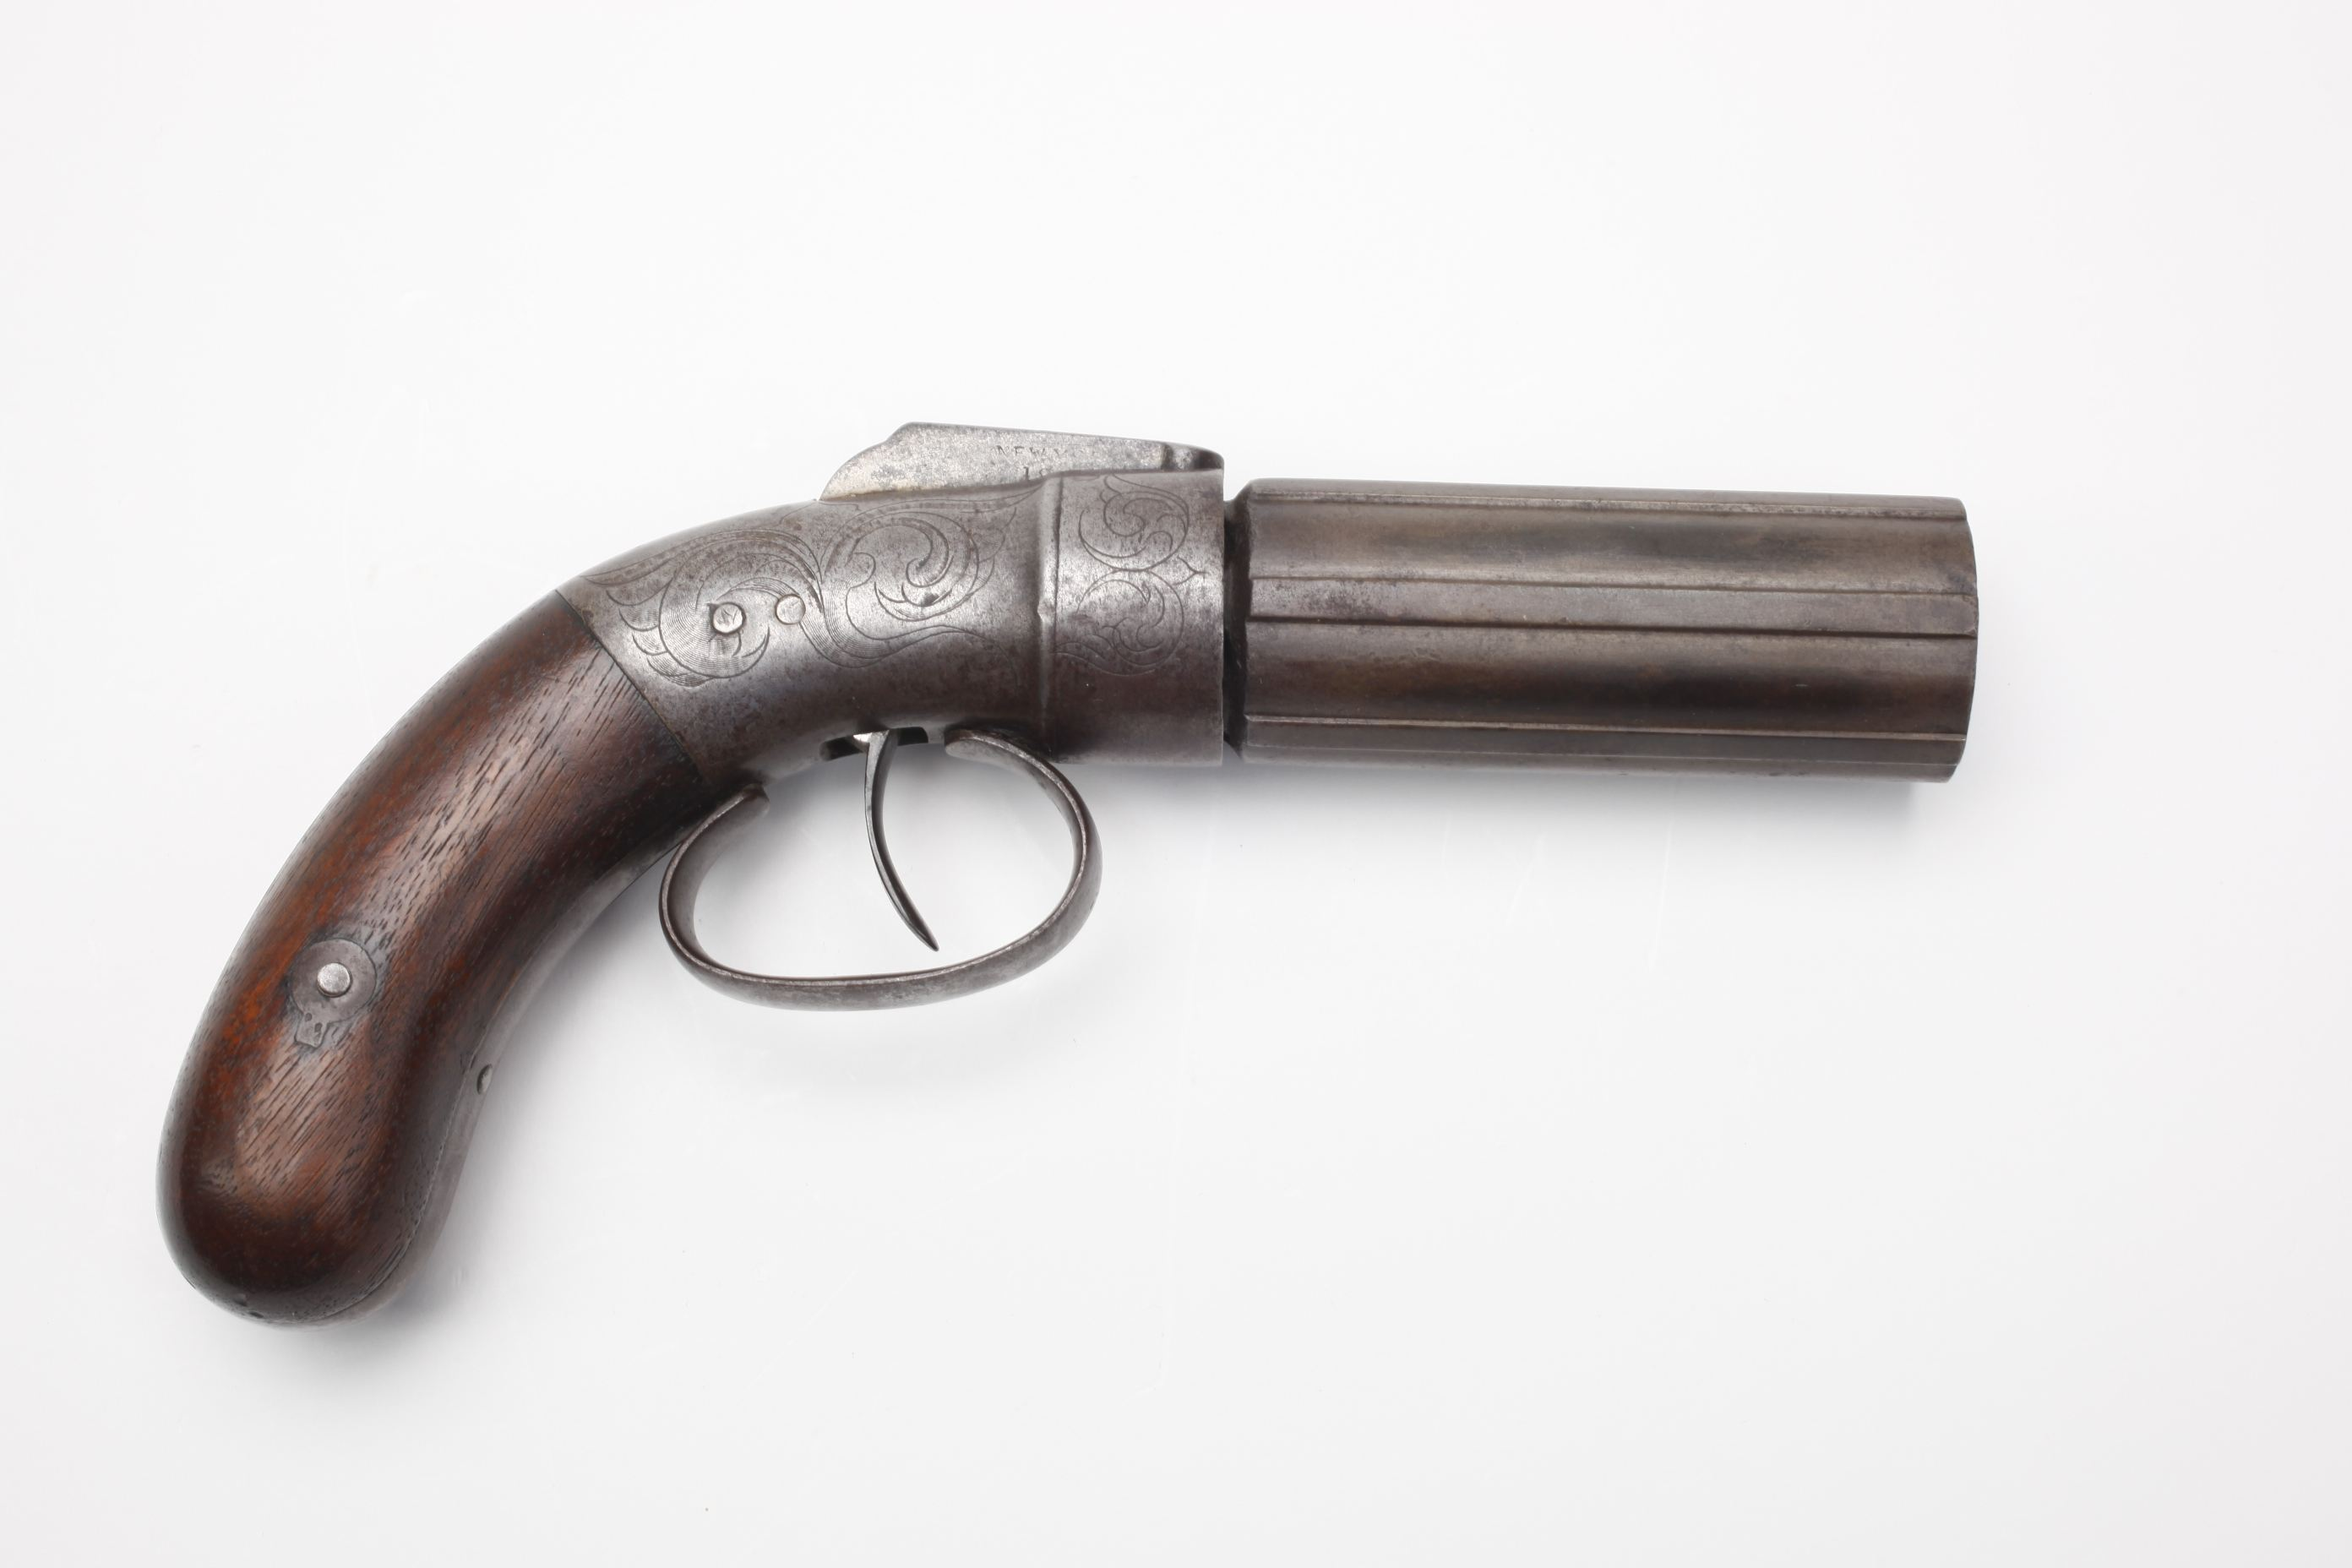 Sprague & Marston Pepperbox Pistol